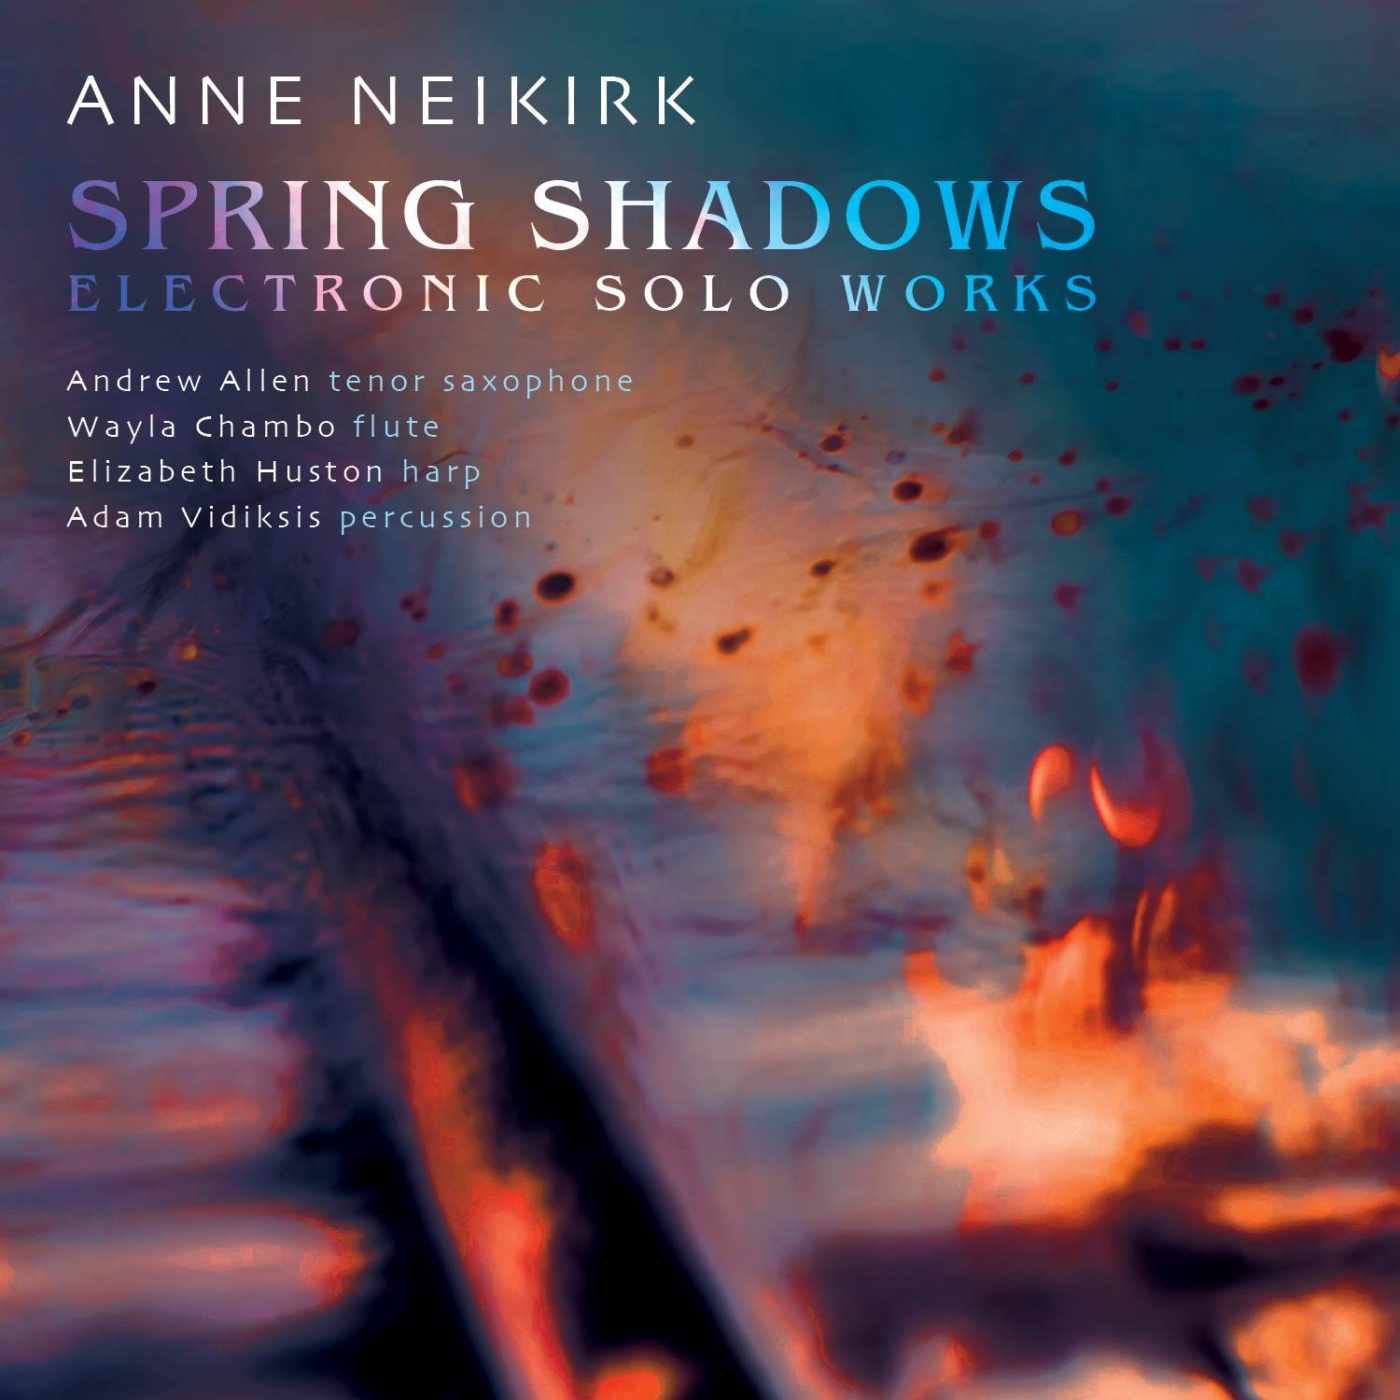 Spring Shadows - Anne Neikirk - Album Cover